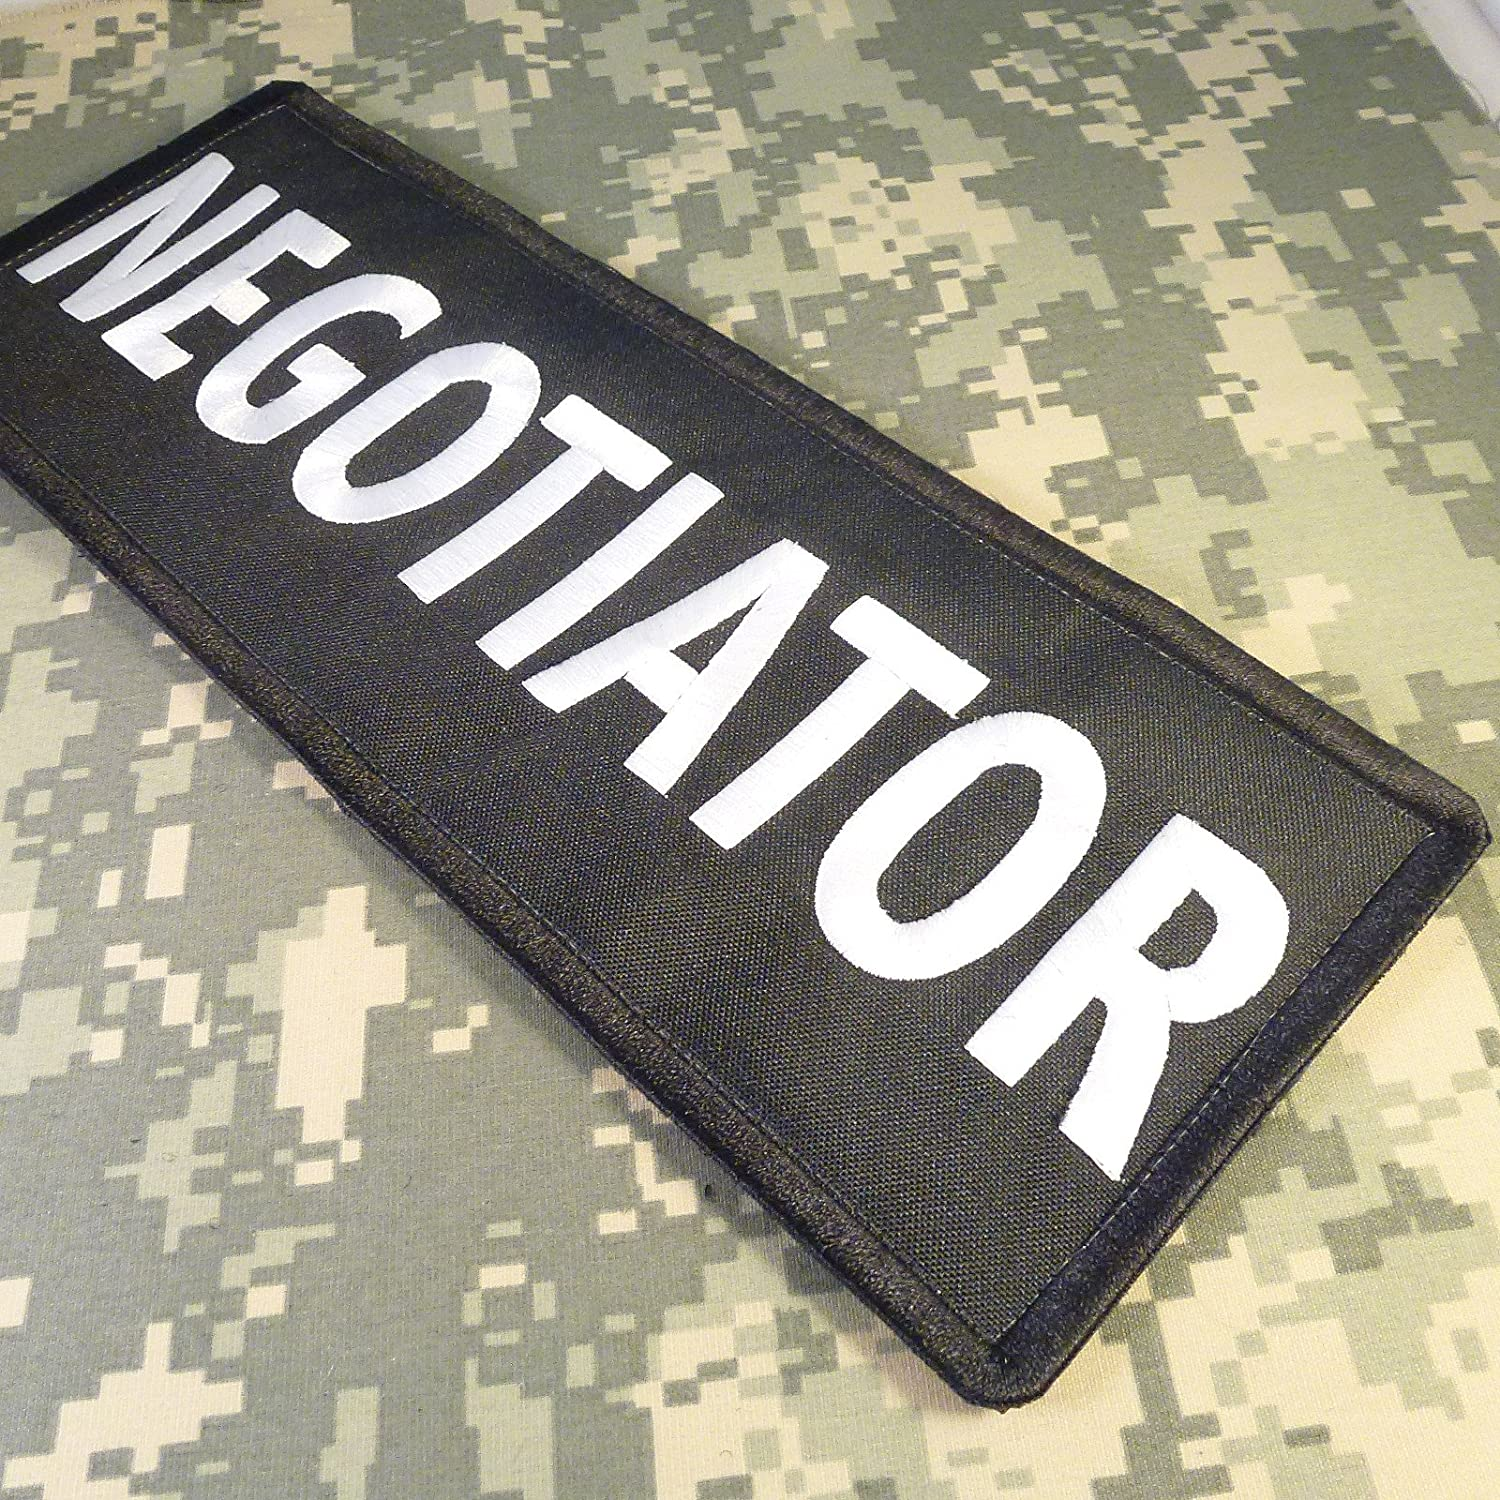 NEGOTIATOR Big XL 10x4 inch SWAT POLICE Vest Tactical Embroidered Nylon Fastener /Écusson Patch